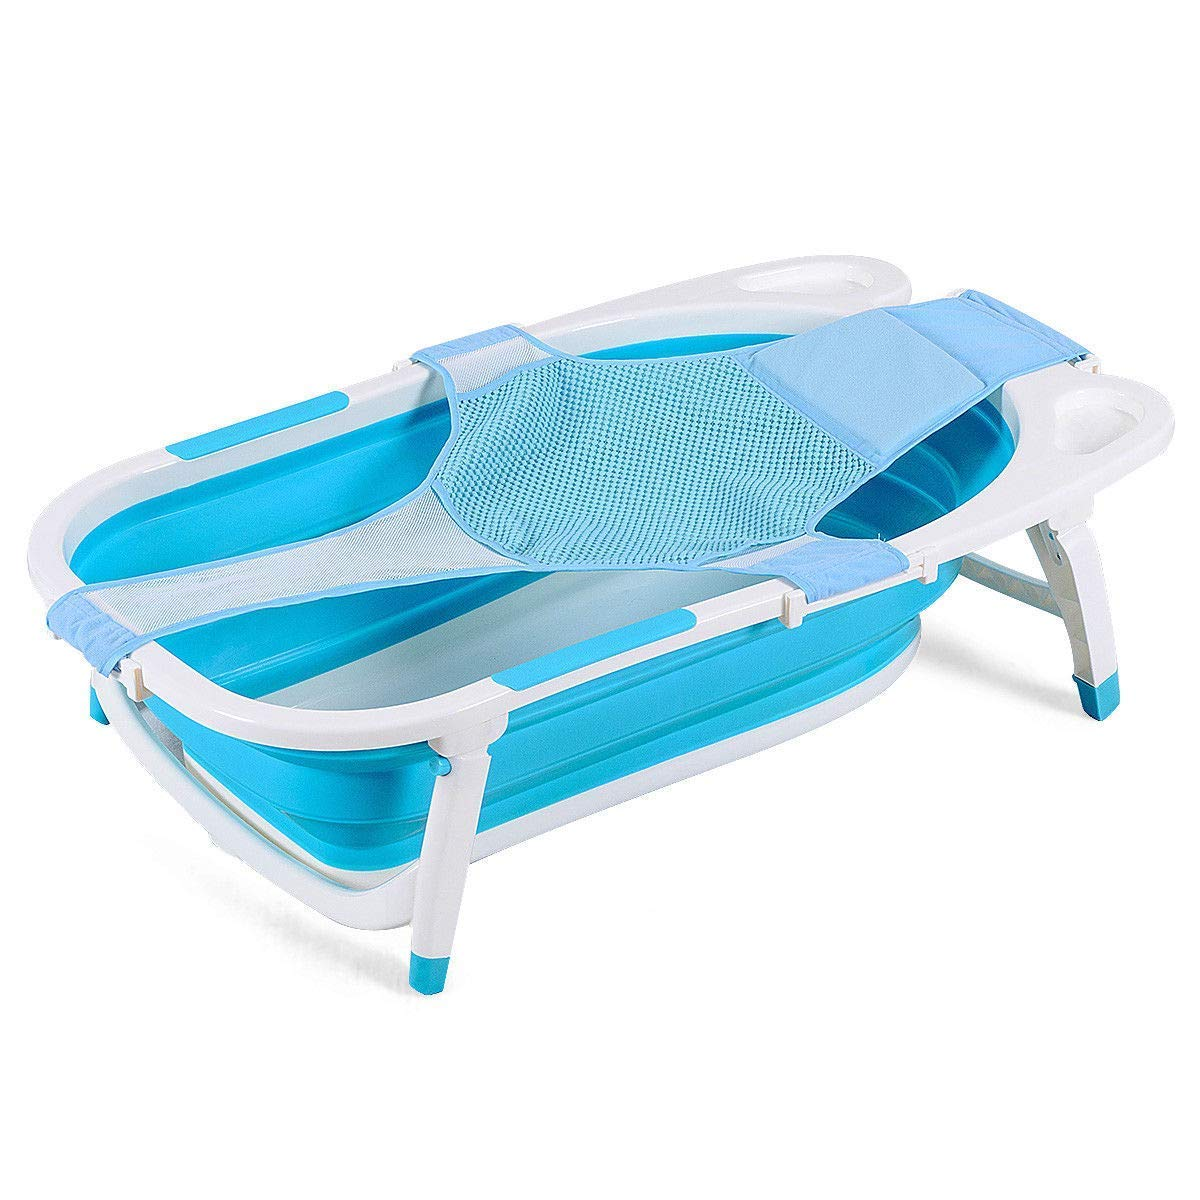 BABY JOY Collapsible Baby Bathtub, Folding Portable Shower Basin with Non-Slip Mat, Storage Slot, Recline Position for Infant (Blue) by BABY JOY